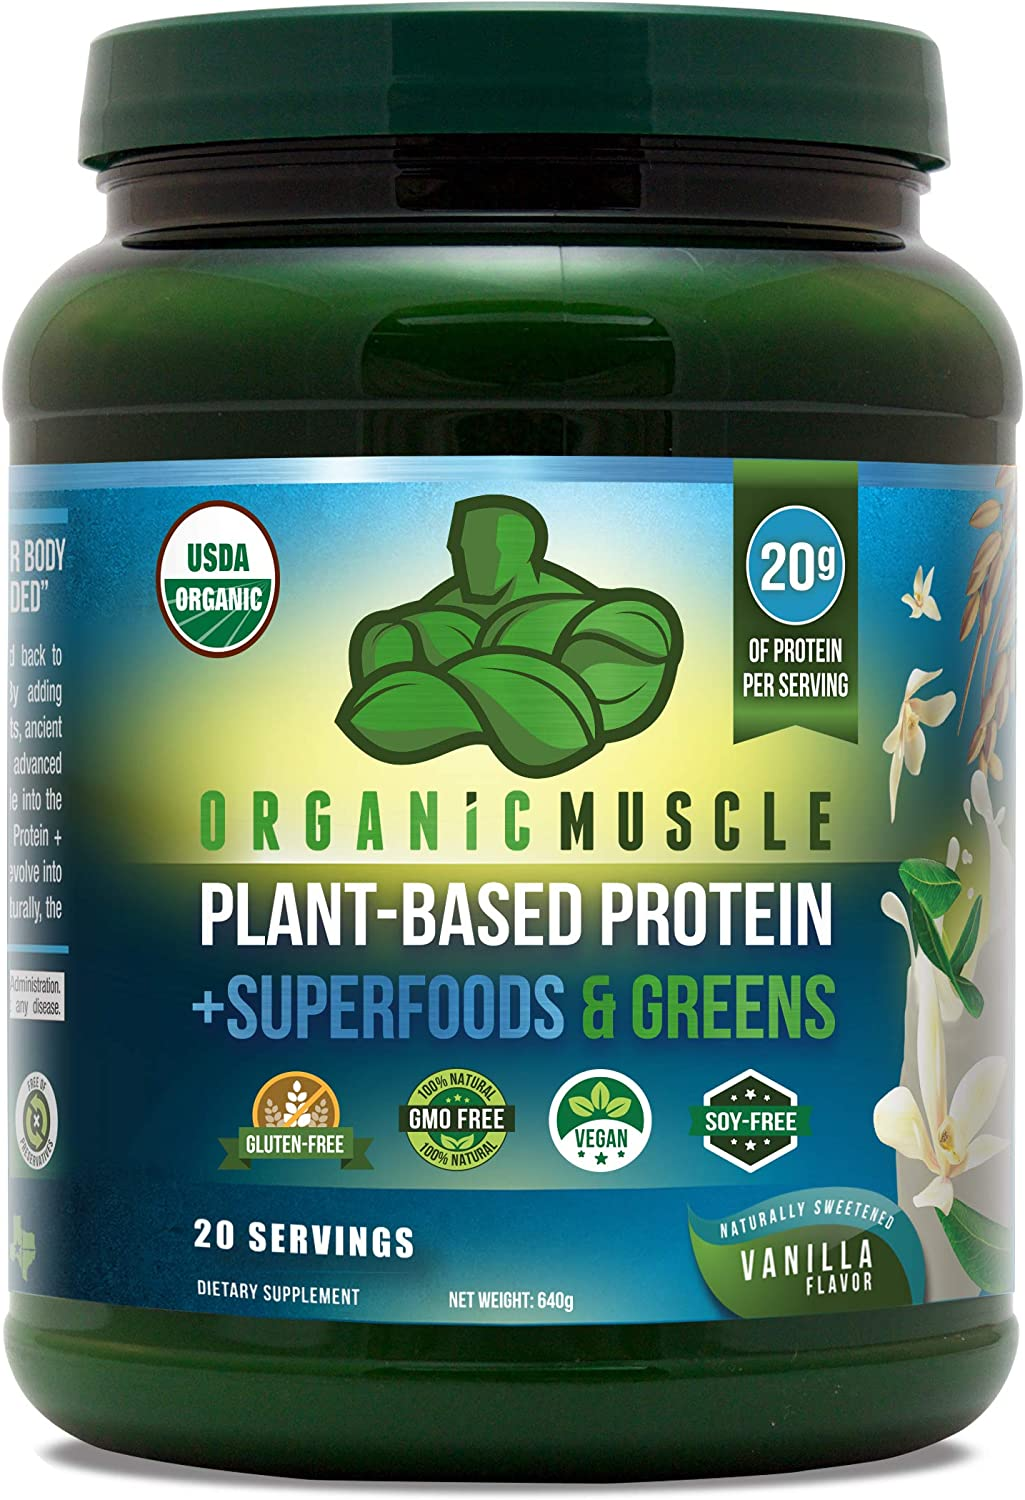 Certified Organic Superfood Protein & Greens   Plant Based Meal Replacement w/ 20g of Vegan Protein + 40 Superfoods   Immune Booster, Weight Loss Aid, Probiotic Blend   Non-GMO, Vanilla   20 Serv